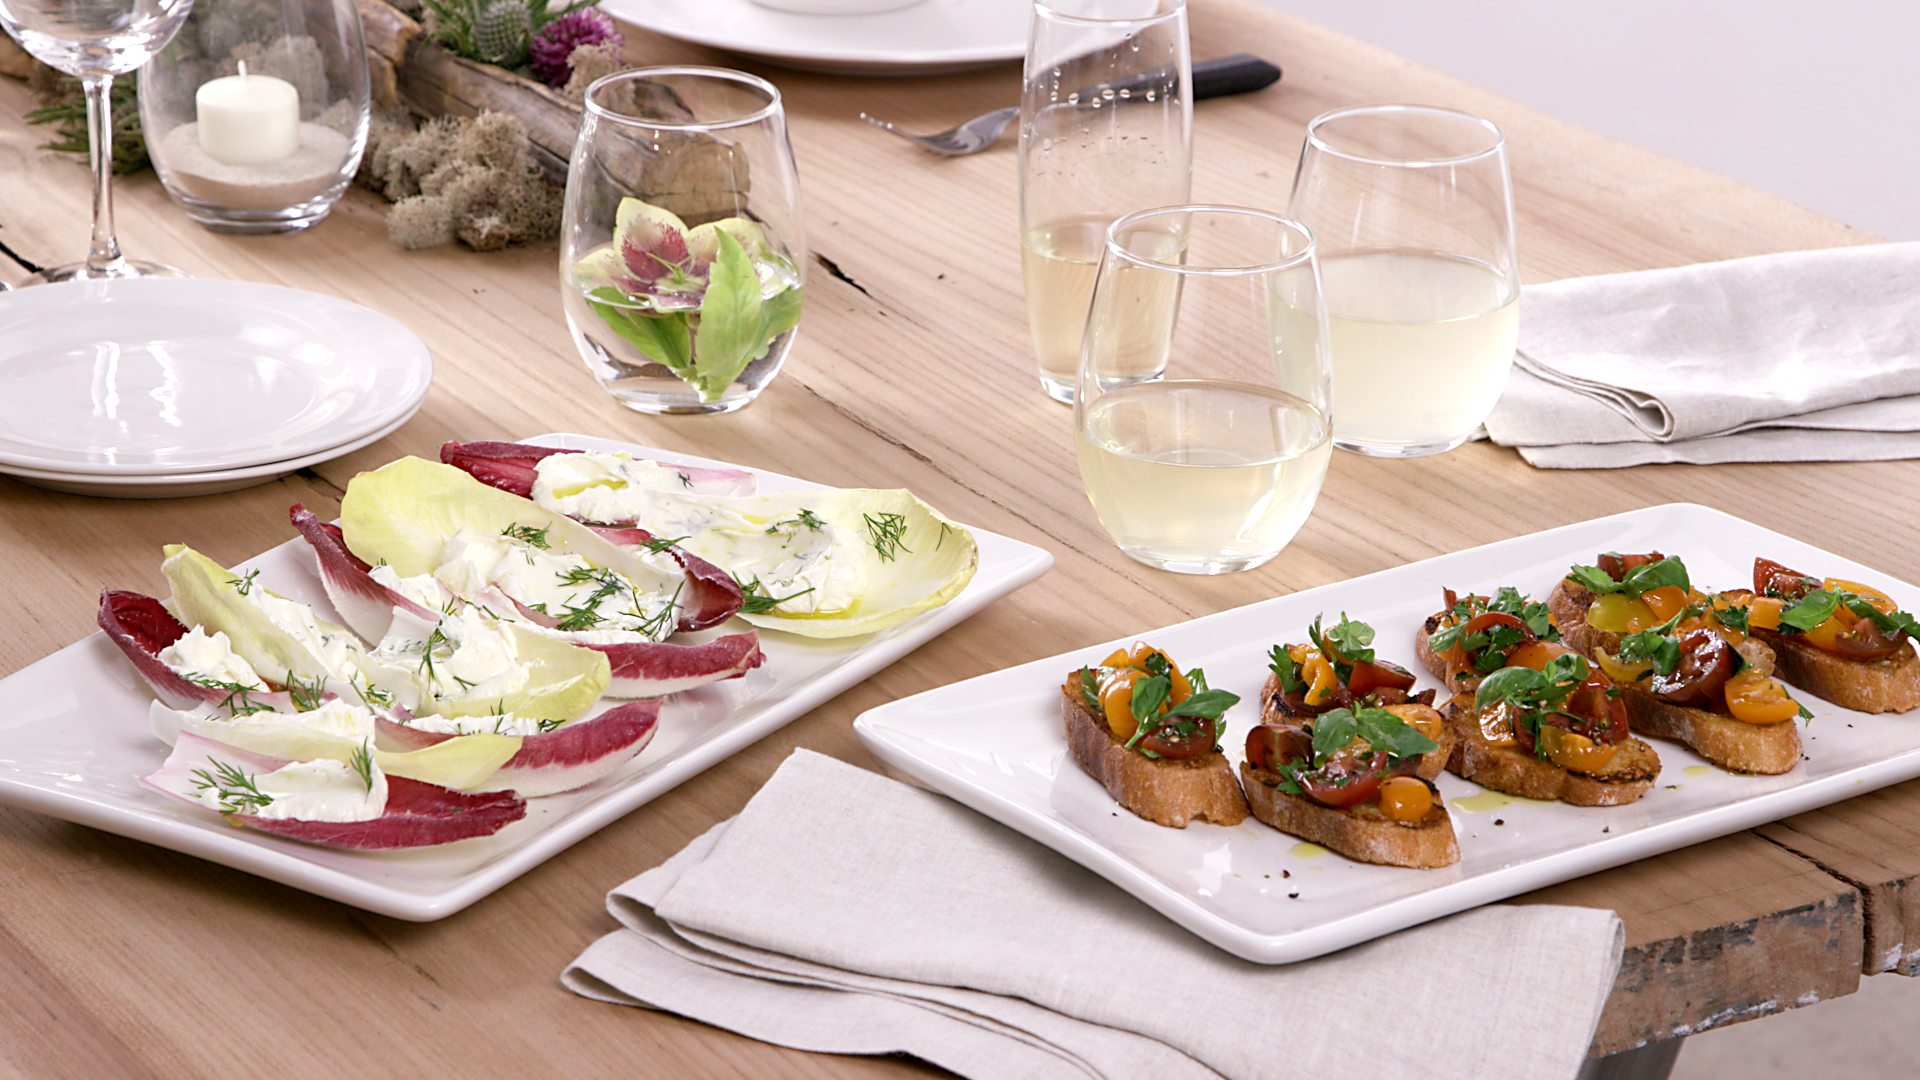 white macys serveware with appetizers and drinks